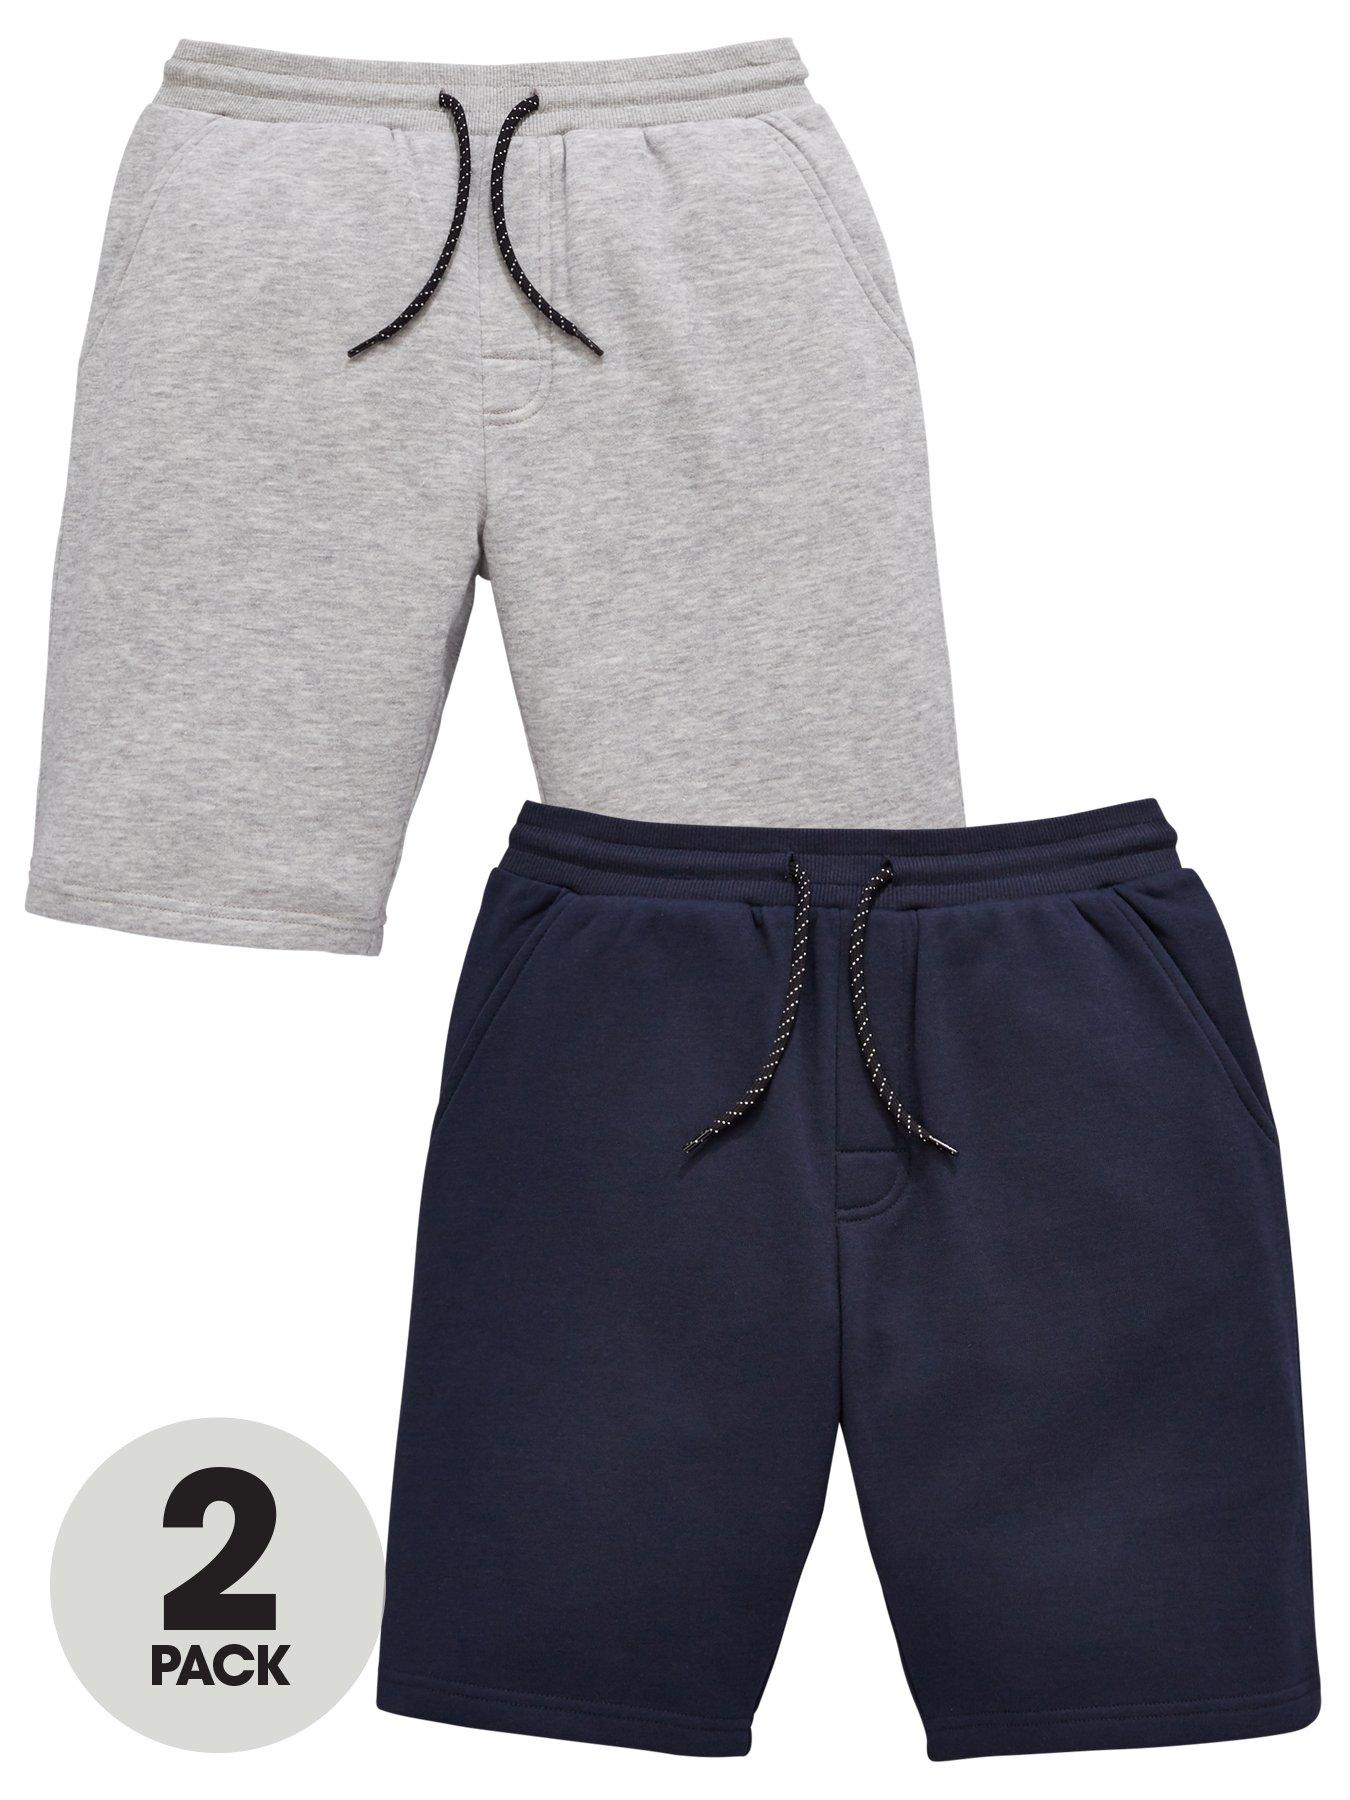 Baby & Toddler Clothing Shorts Bundle Boys' Clothing (newborn-5t) 7 Pairs, All 6-9months